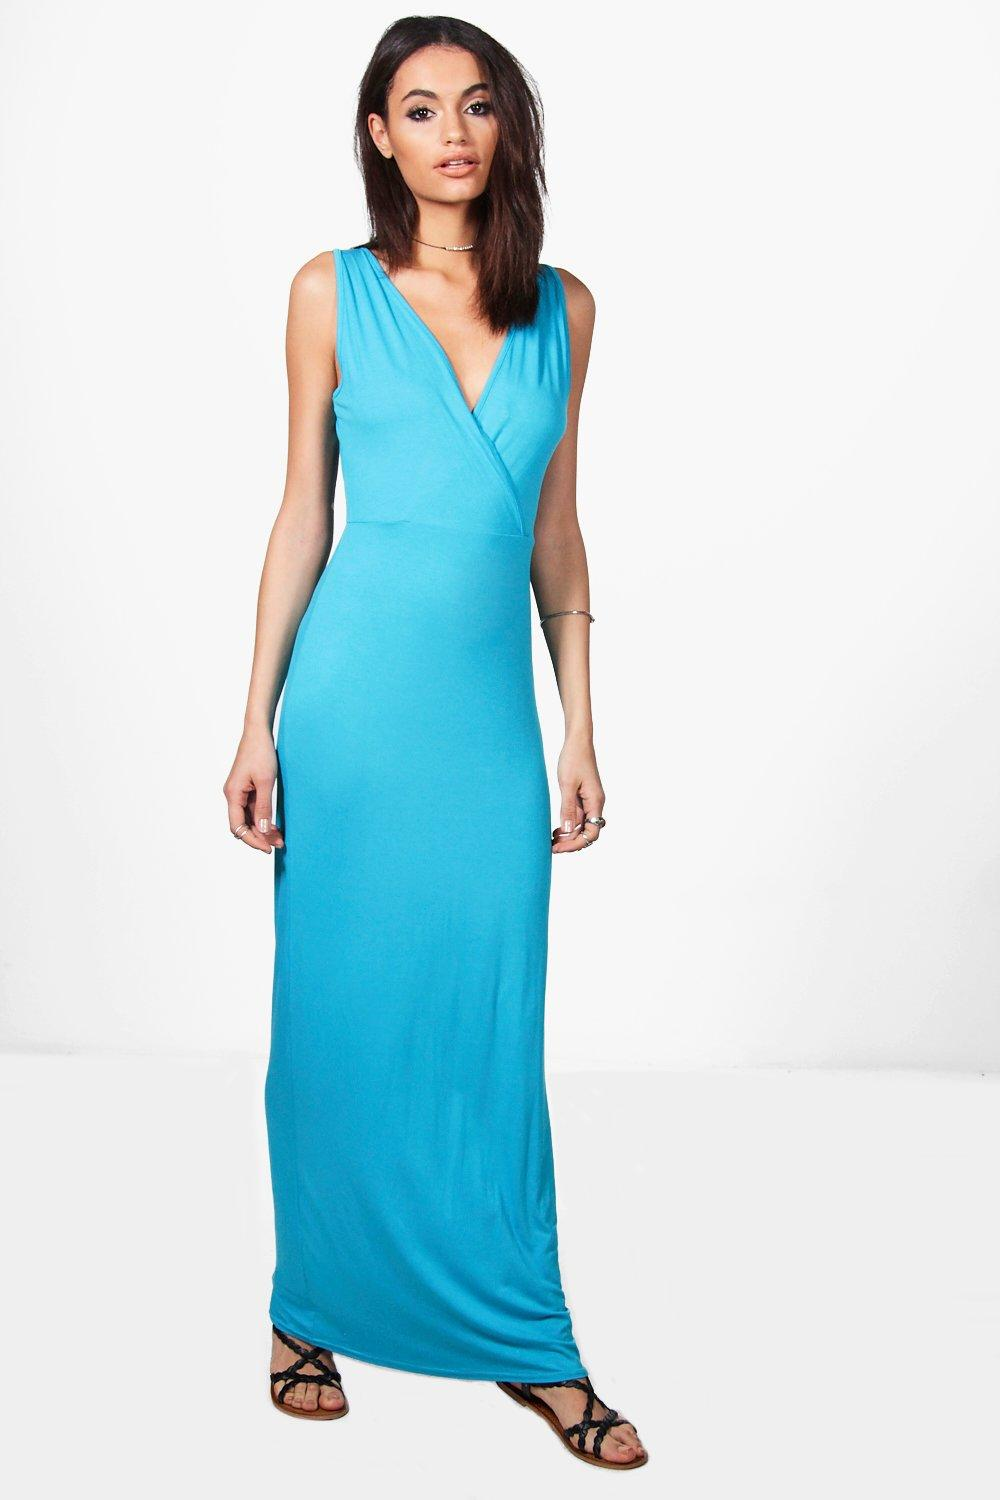 Wrap Front And Back Maxi Dress  turquoise